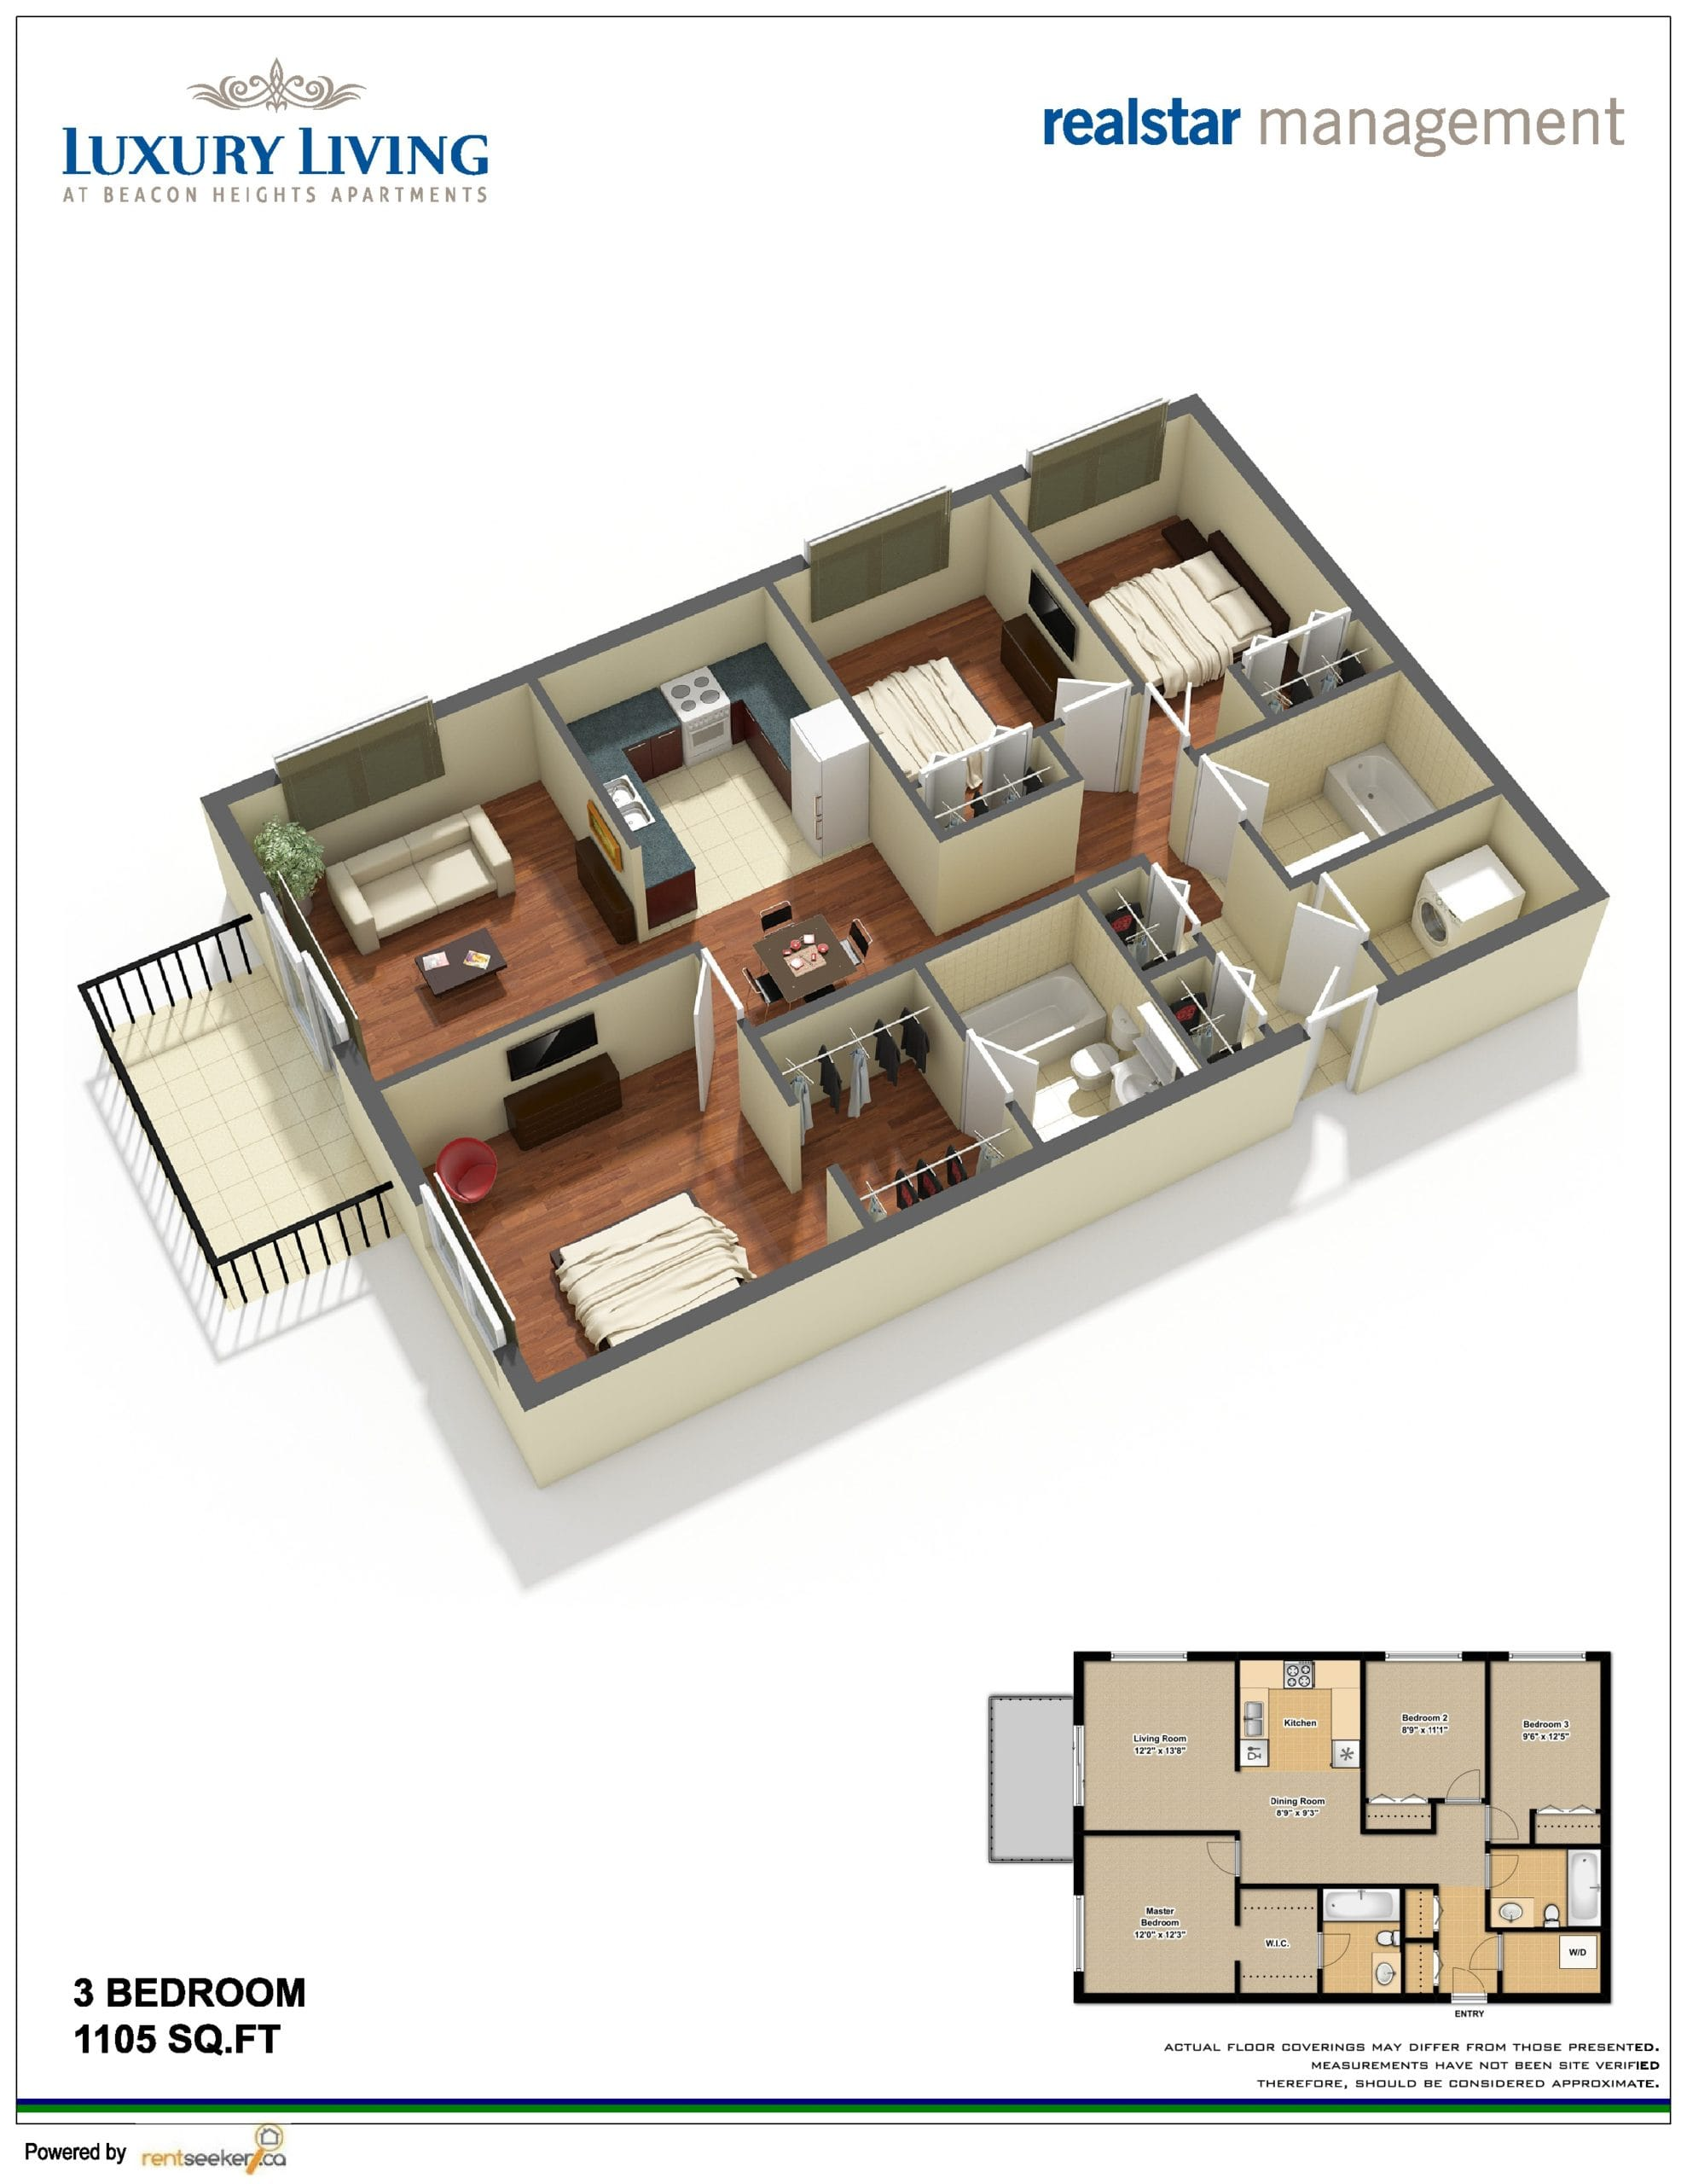 RentSeeker.ca Apartment 3-D Floor Plan for Realstar